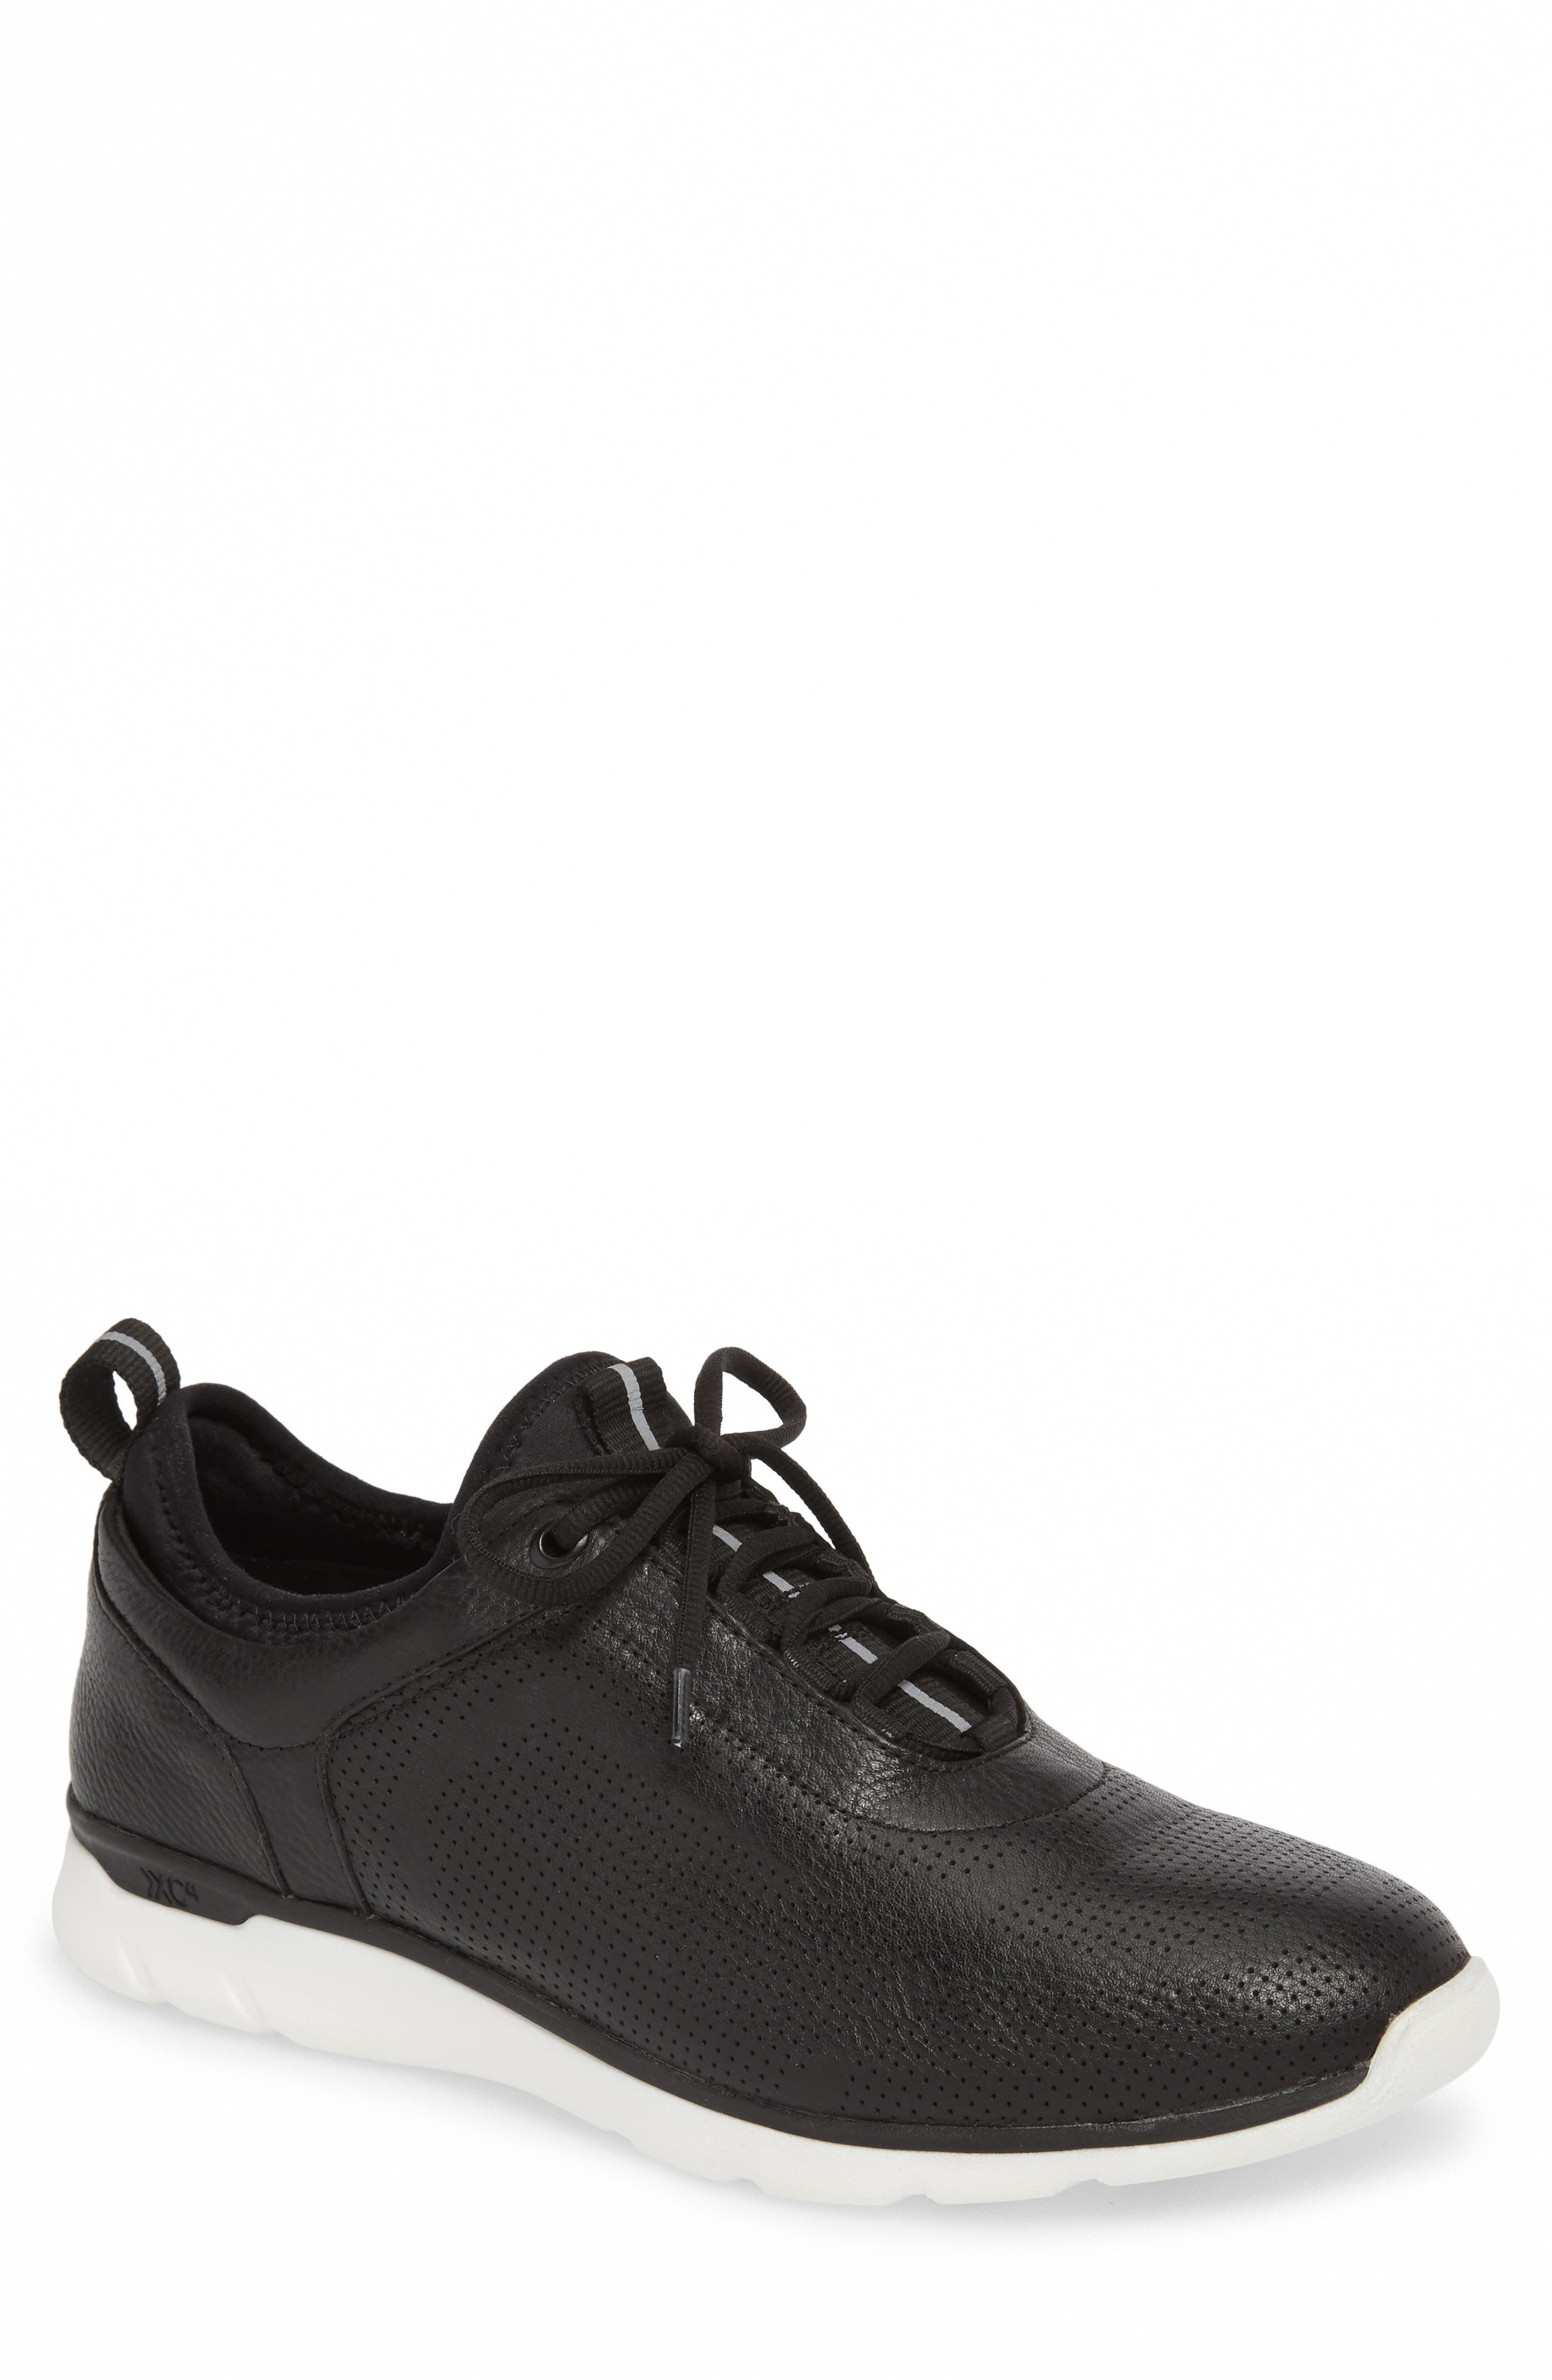 Prentiss XC4<sup>®</sup> Waterproof Sneaker,                             Main thumbnail 1, color,                             BLACK LEATHER